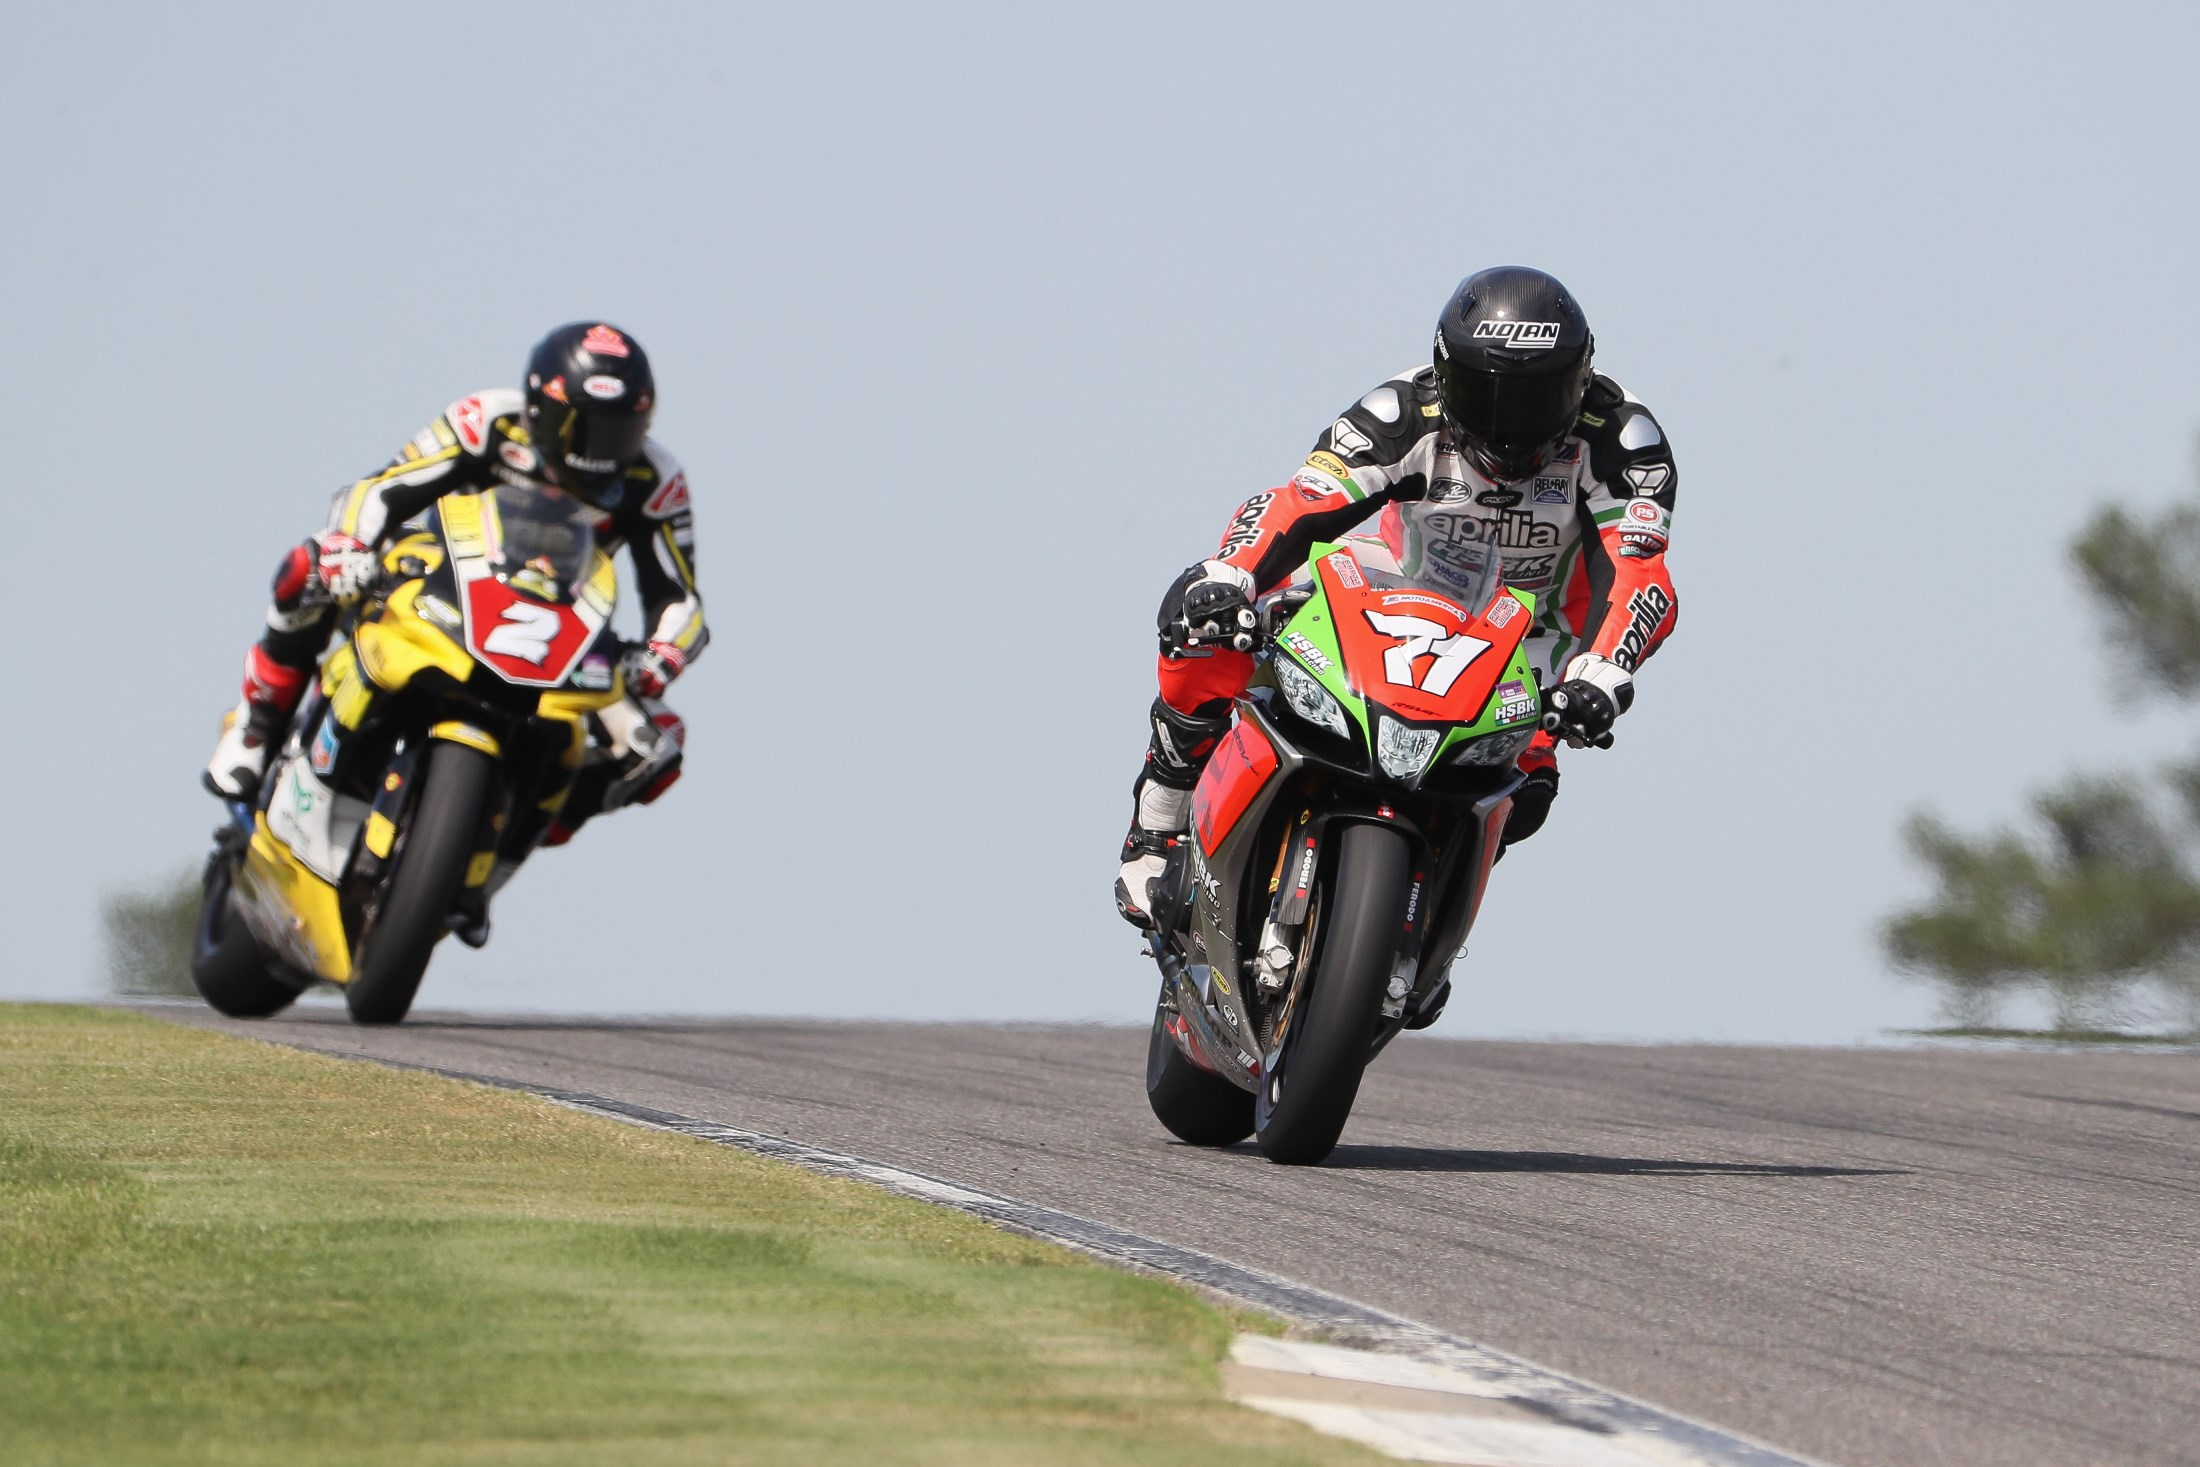 BARBER ROUND PROVES CHALLENGING FOR APRILIA HSBK RACING, BUT TEAM REMAINS FOCUSED ENTERING FINAL THREE ROUNDS